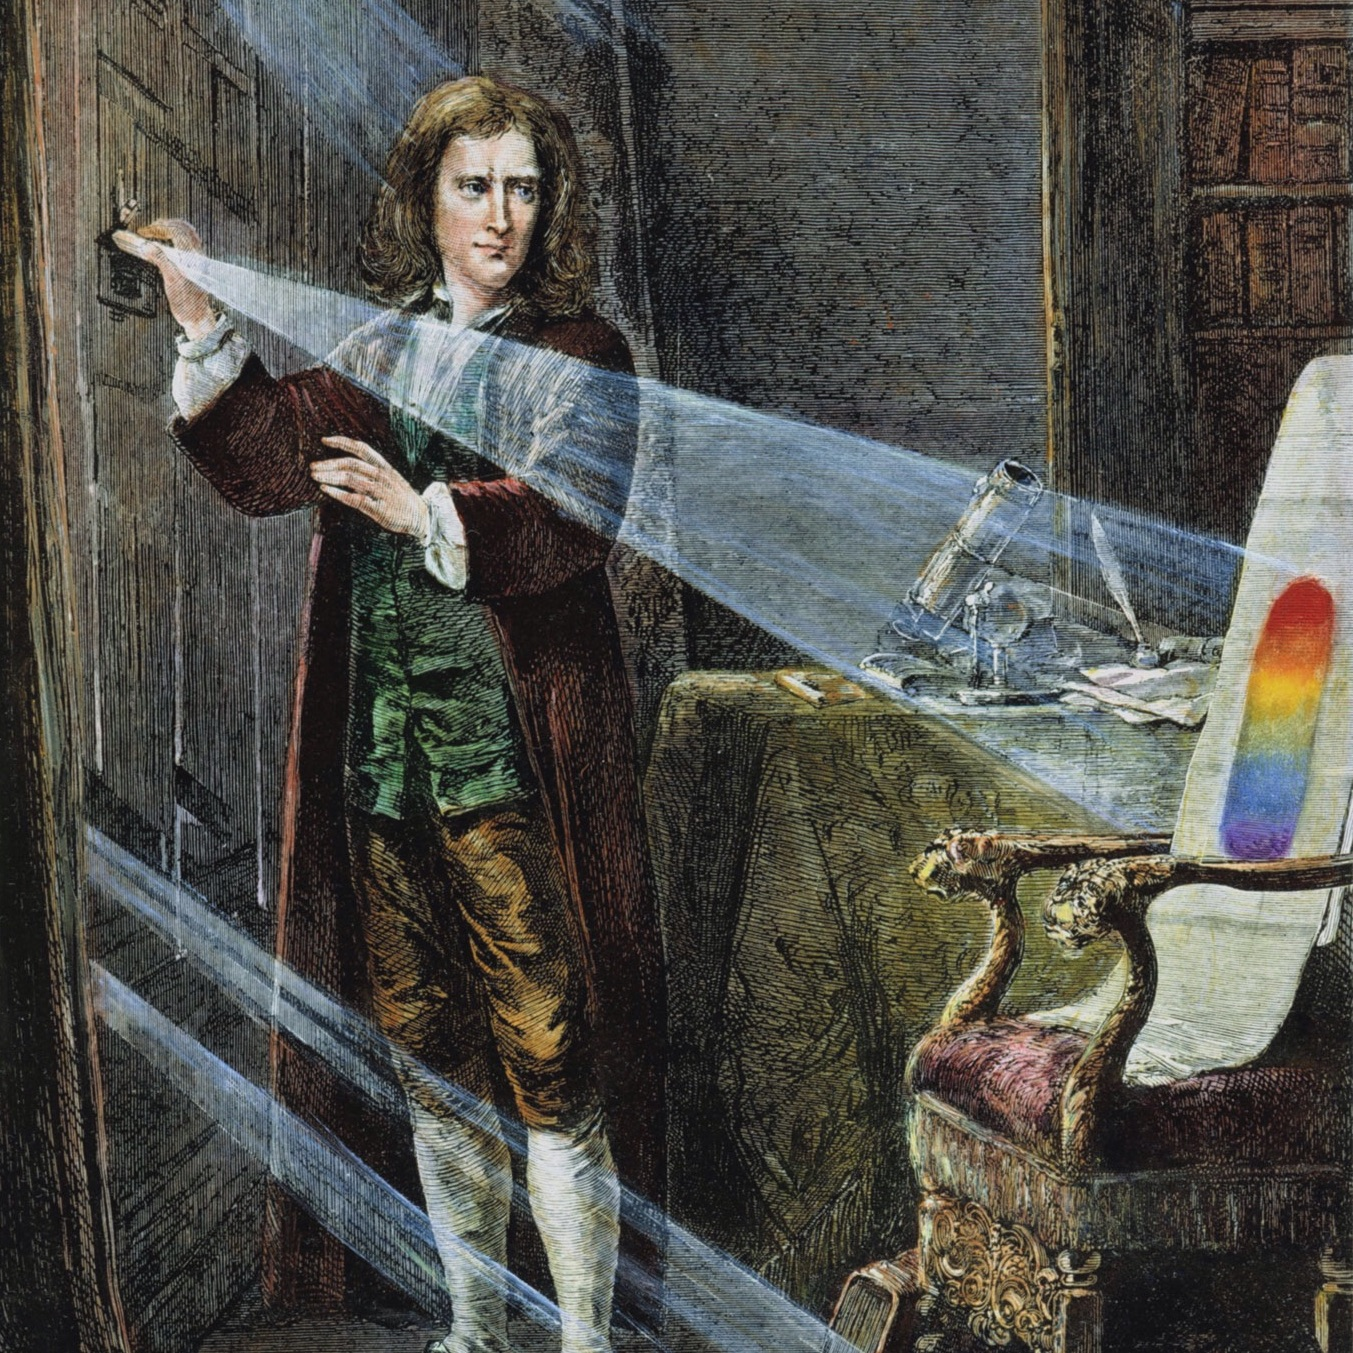 TEACHING SCIENCE INDUCTIVELY- PART I    We gain knowledge by an inductive discovery process. Whether we consider the scientific genius who first made a discovery, or the student who is learning about it, the process is essentially the same. It begins with observations and low-level concepts, and moves by means of experiment and mathematics to higher-level concepts, generalizations and theories...    Read more →